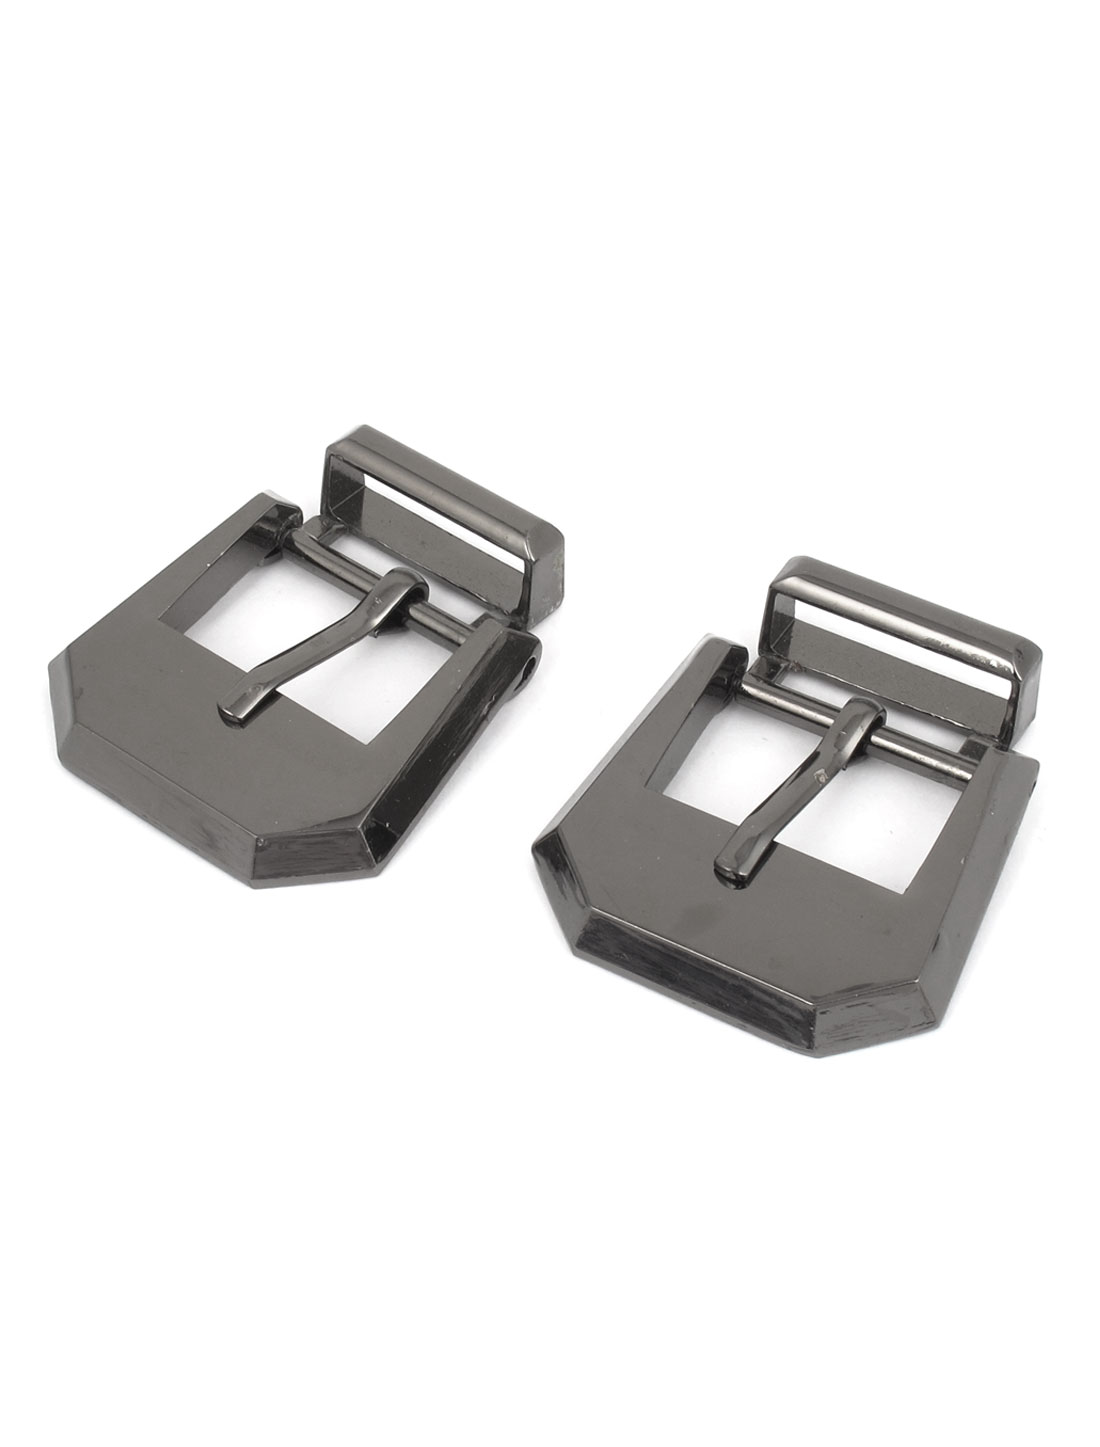 2 Pcs Unisex Stainless Steel Single Pin Style Waistband Buckle Silver Tone